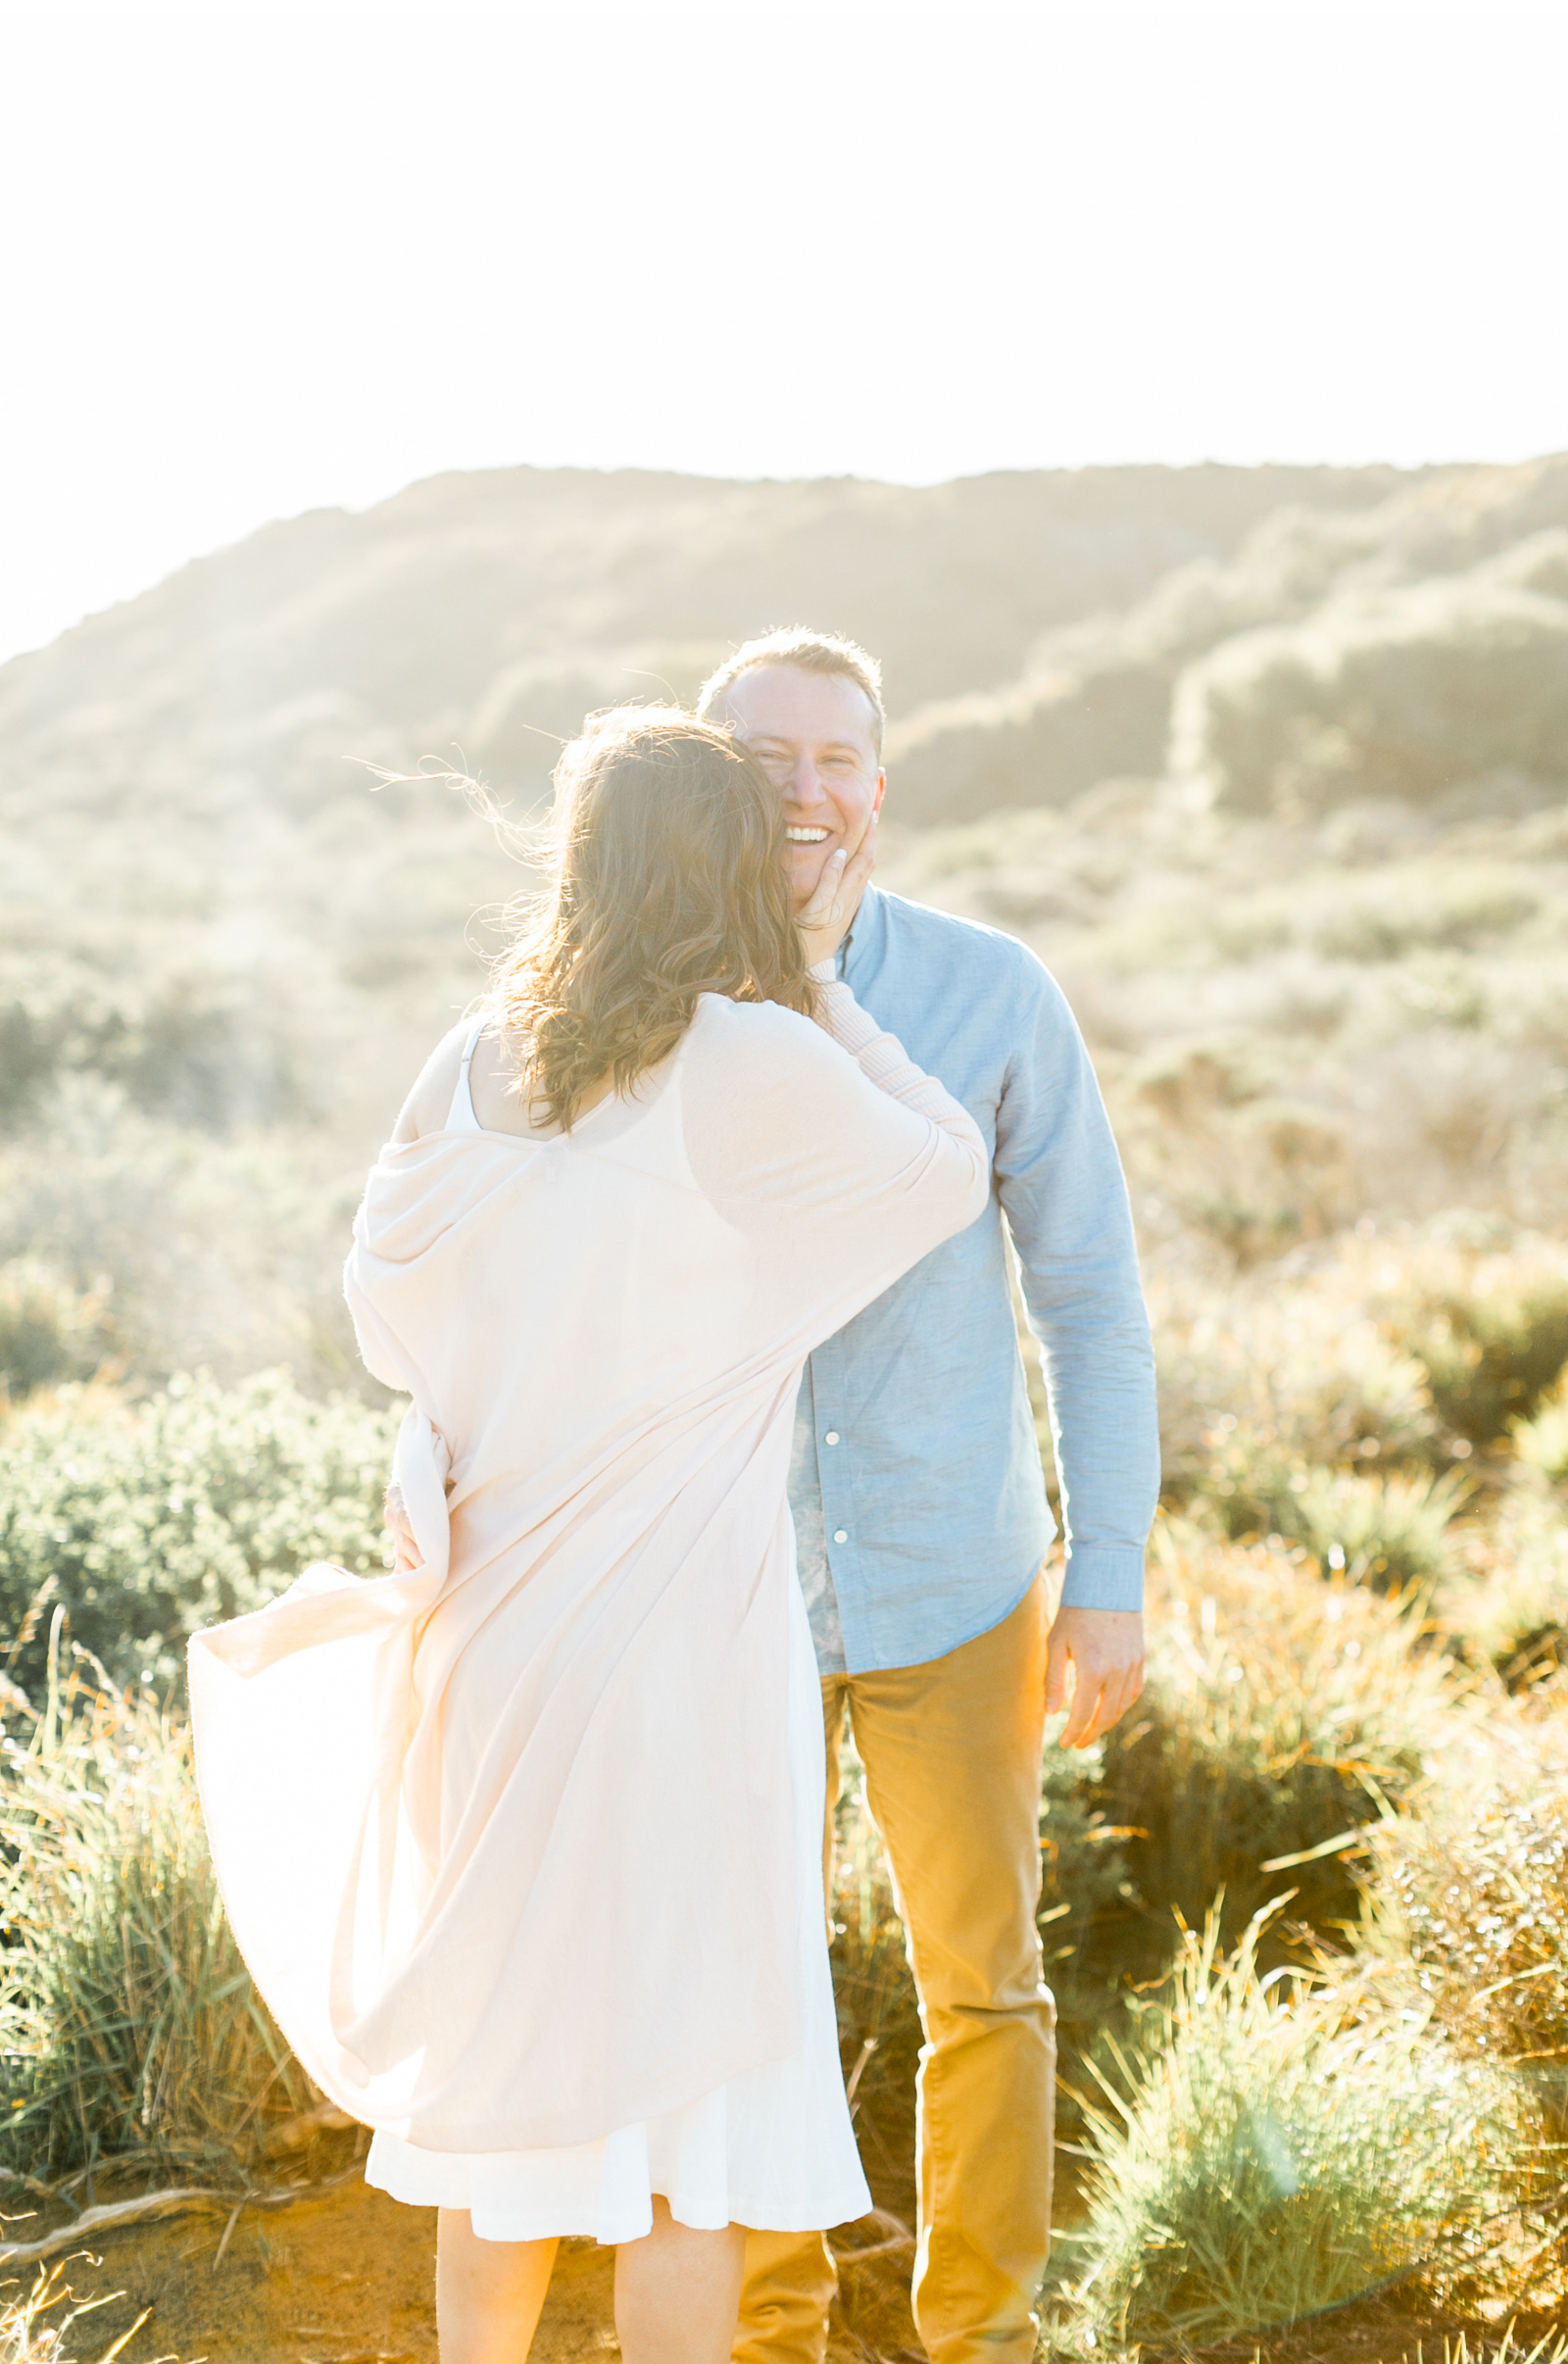 Professional-Wedding-Photographer-Southern-California-Weddings-Malibu-Engagement-Natalie-Schutt-Photography-Style-Me-Pretty-Beachside-Engagement_01.jpg